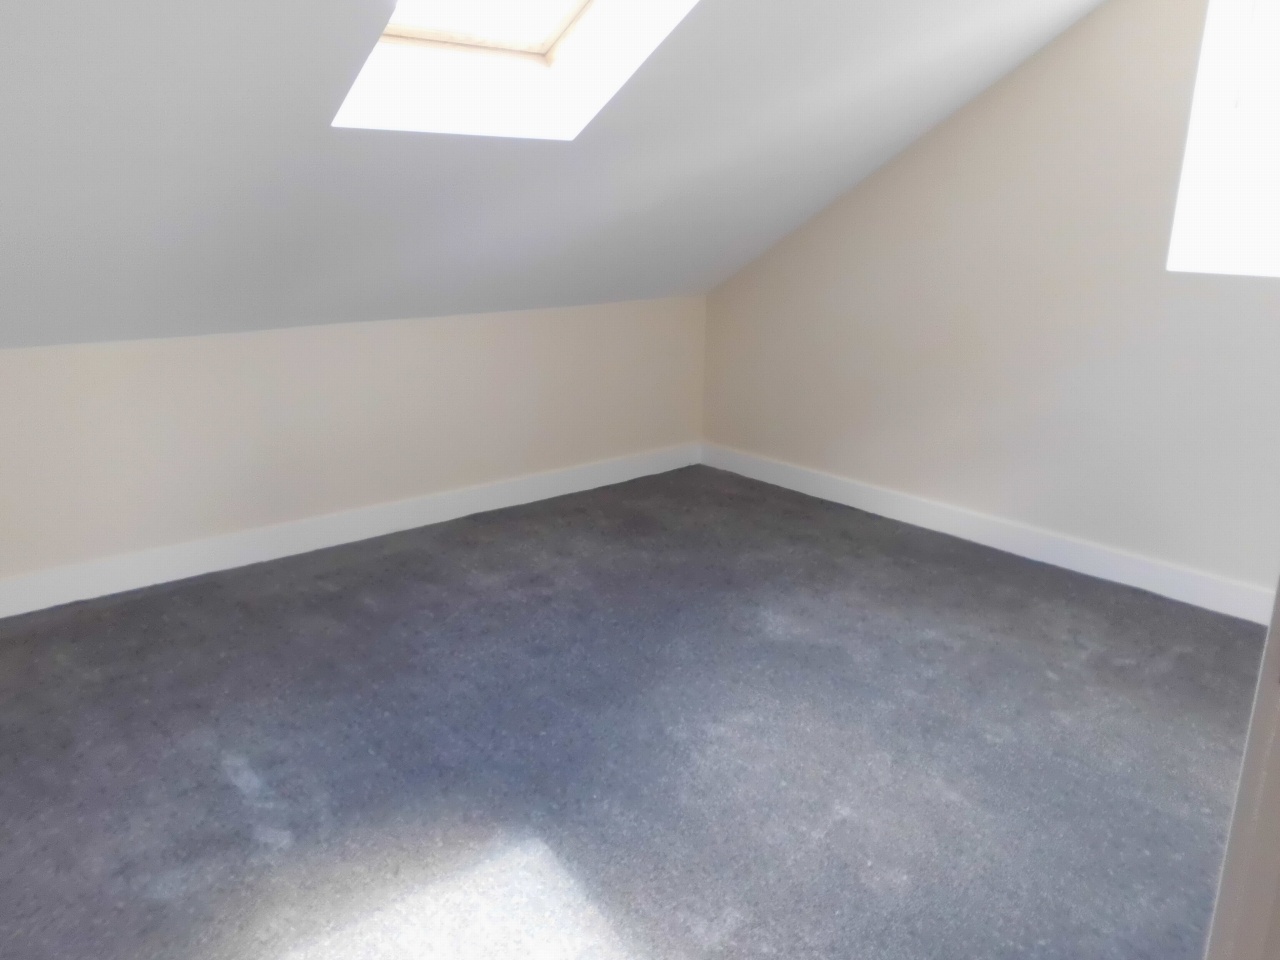 1 Bedroom Apartment Flat/apartment To Let Flat 2 110 Canon Street Image 3